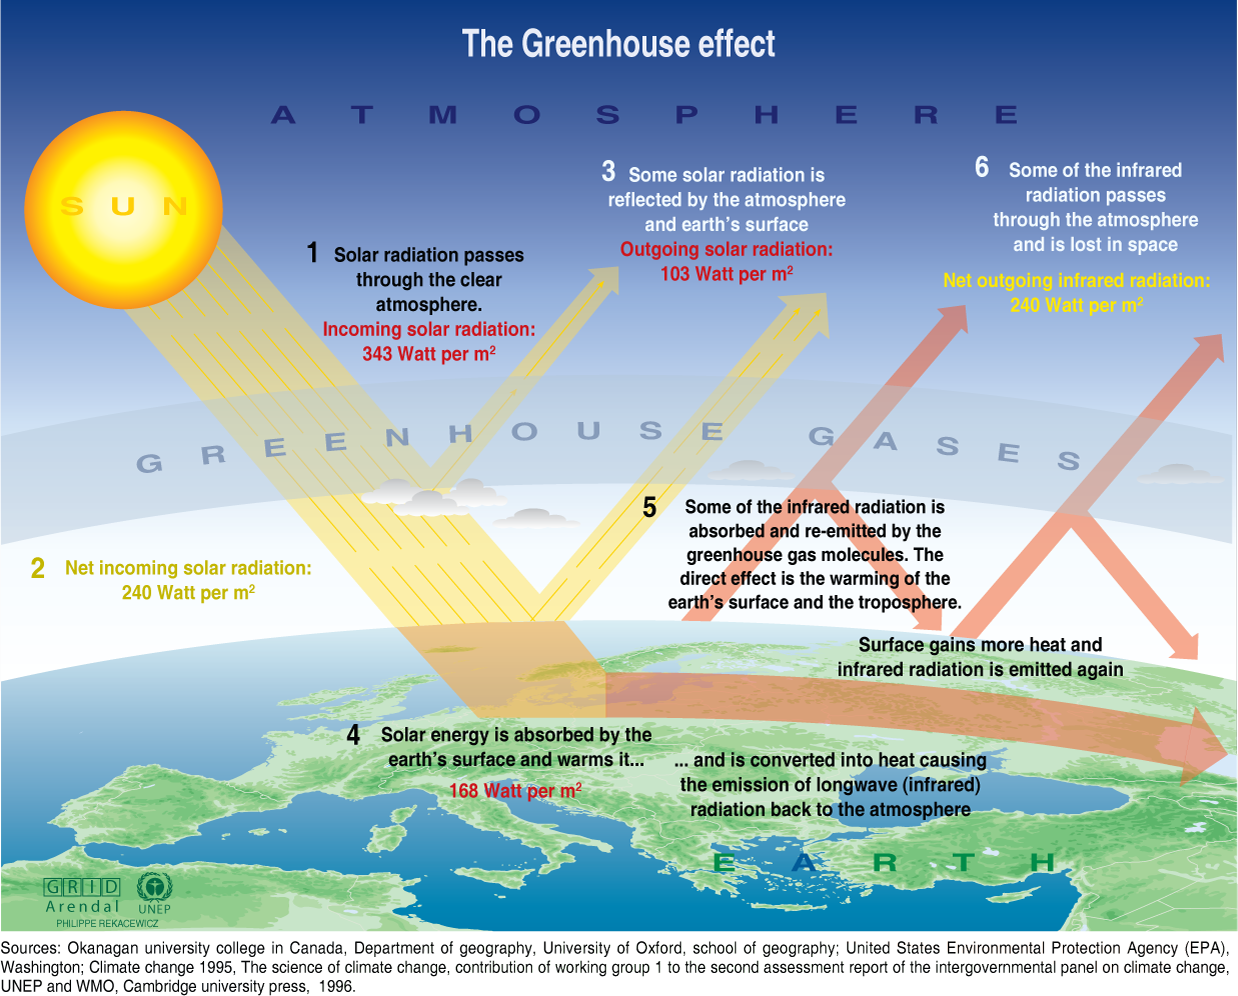 How is the atmosphere heated?